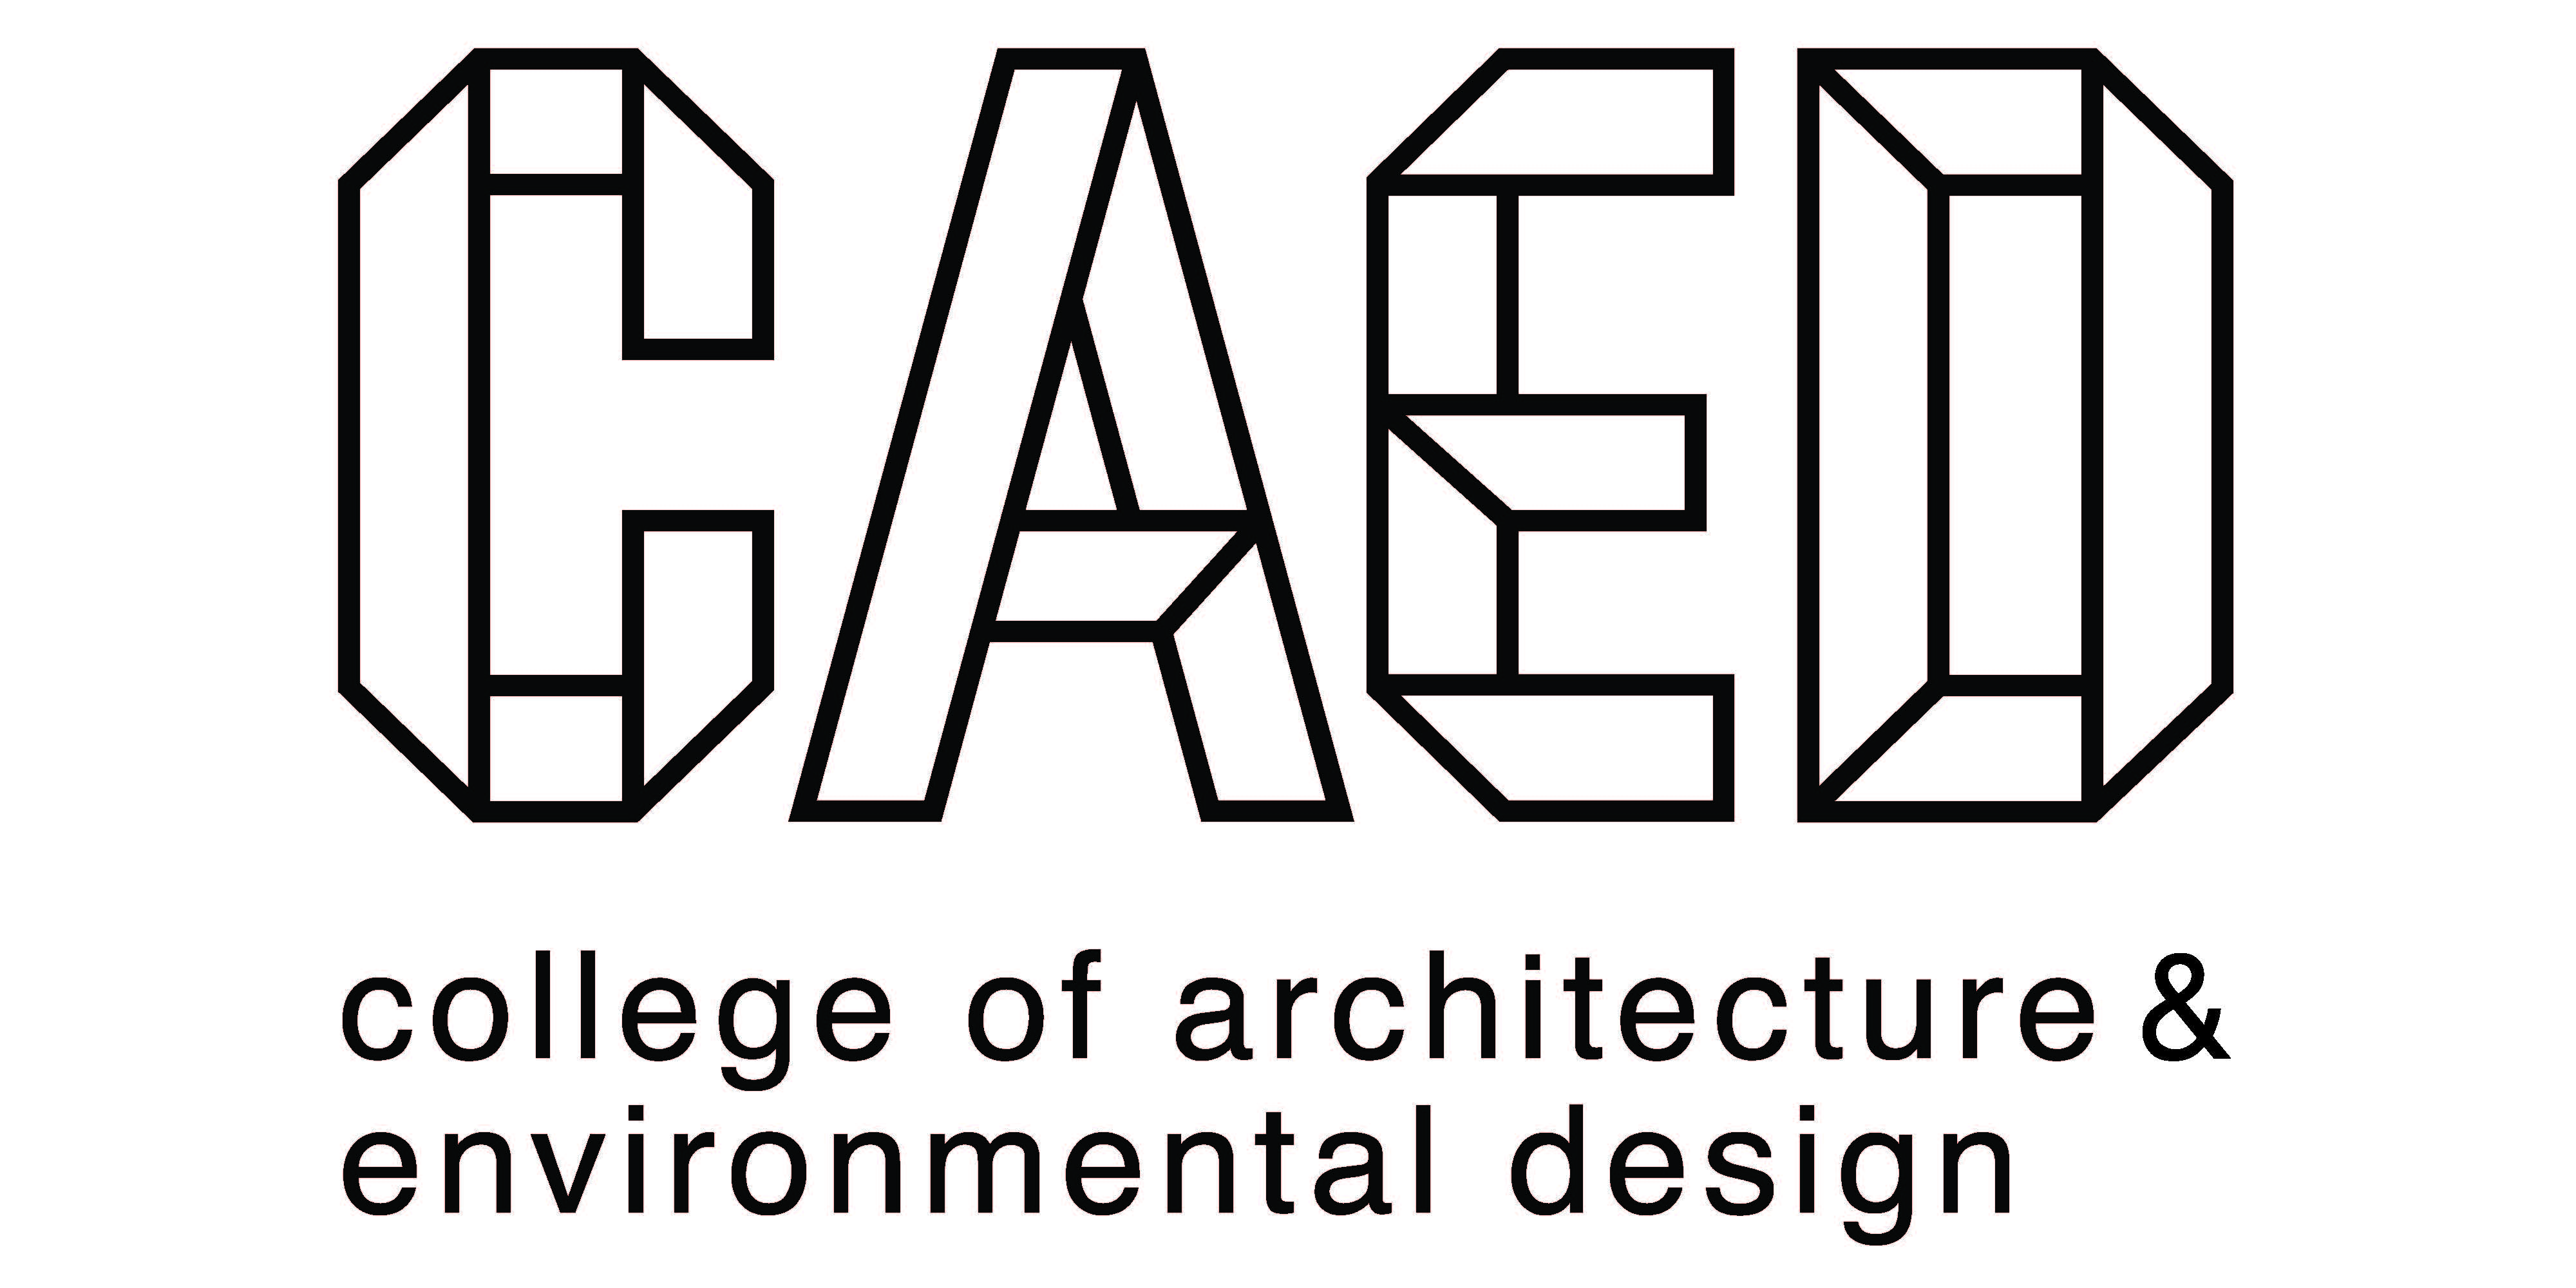 LOGO: College of Architecture and Environmental Design